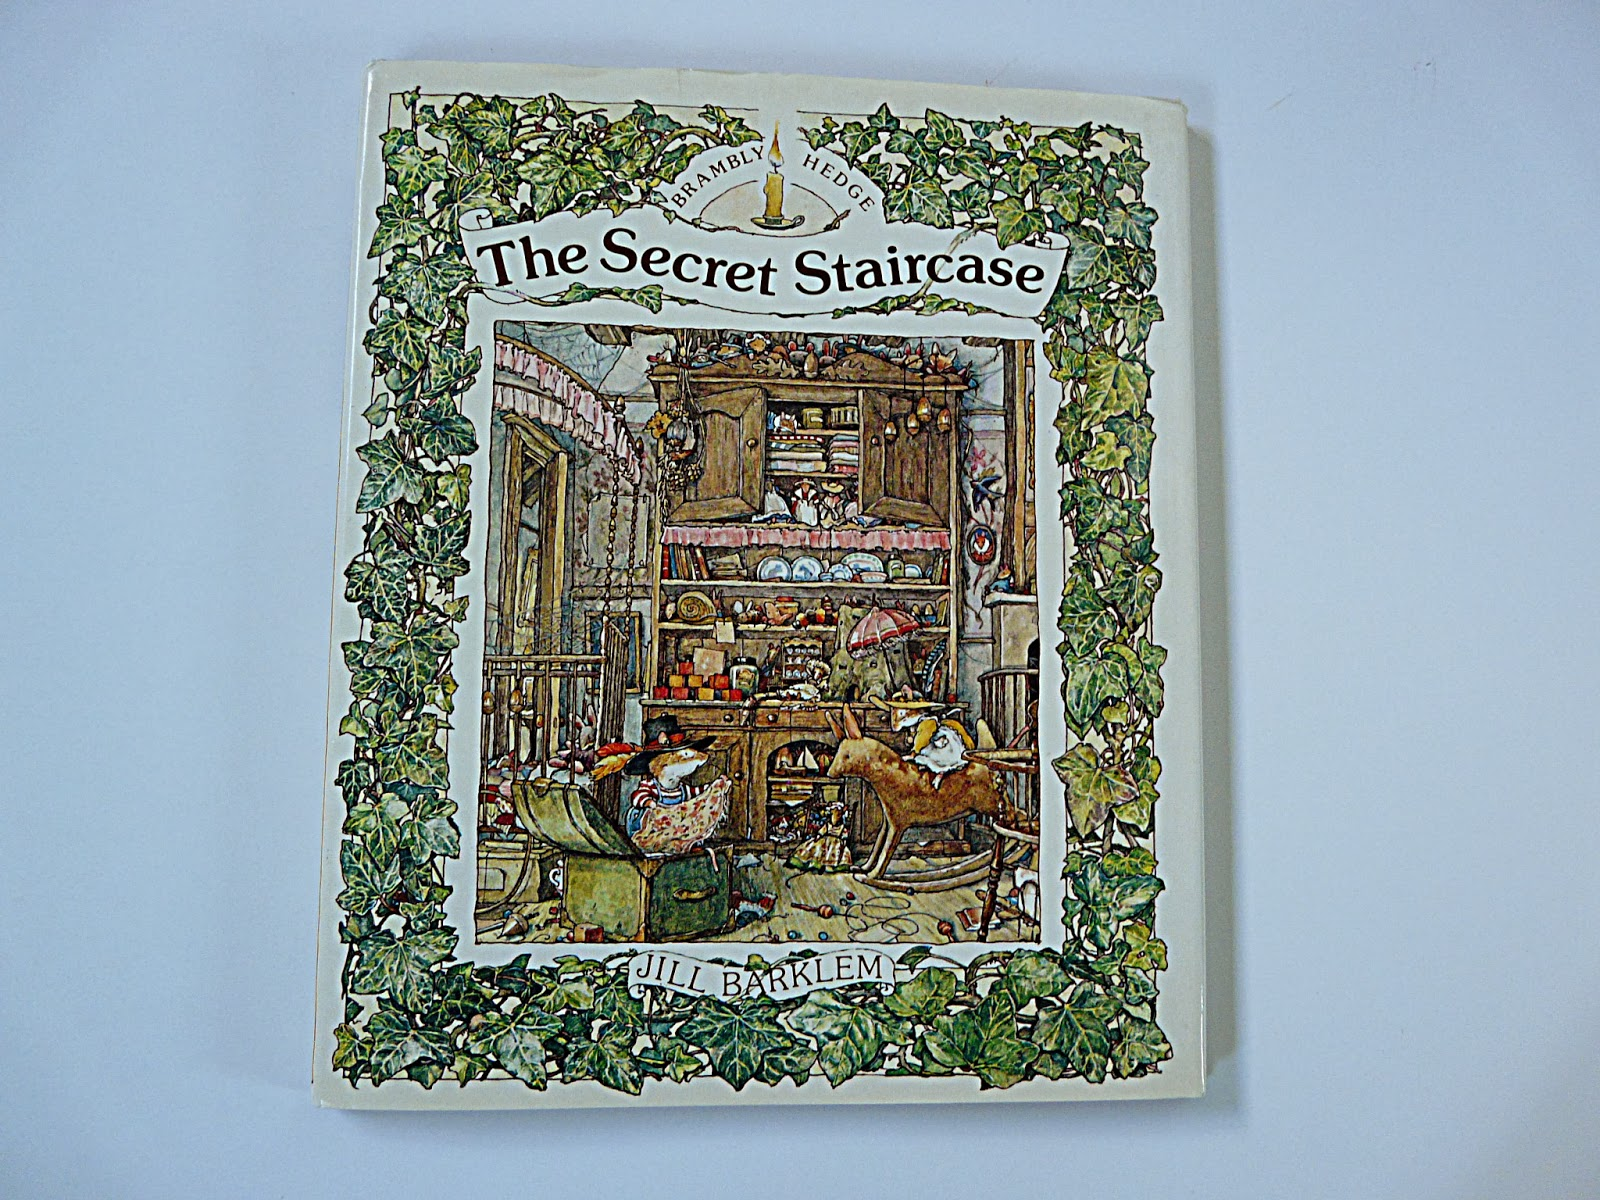 The book looks as if it's never even been opened, which is sad - but not  for me! I've always loved Jill Barklem's wonderful illustrations.